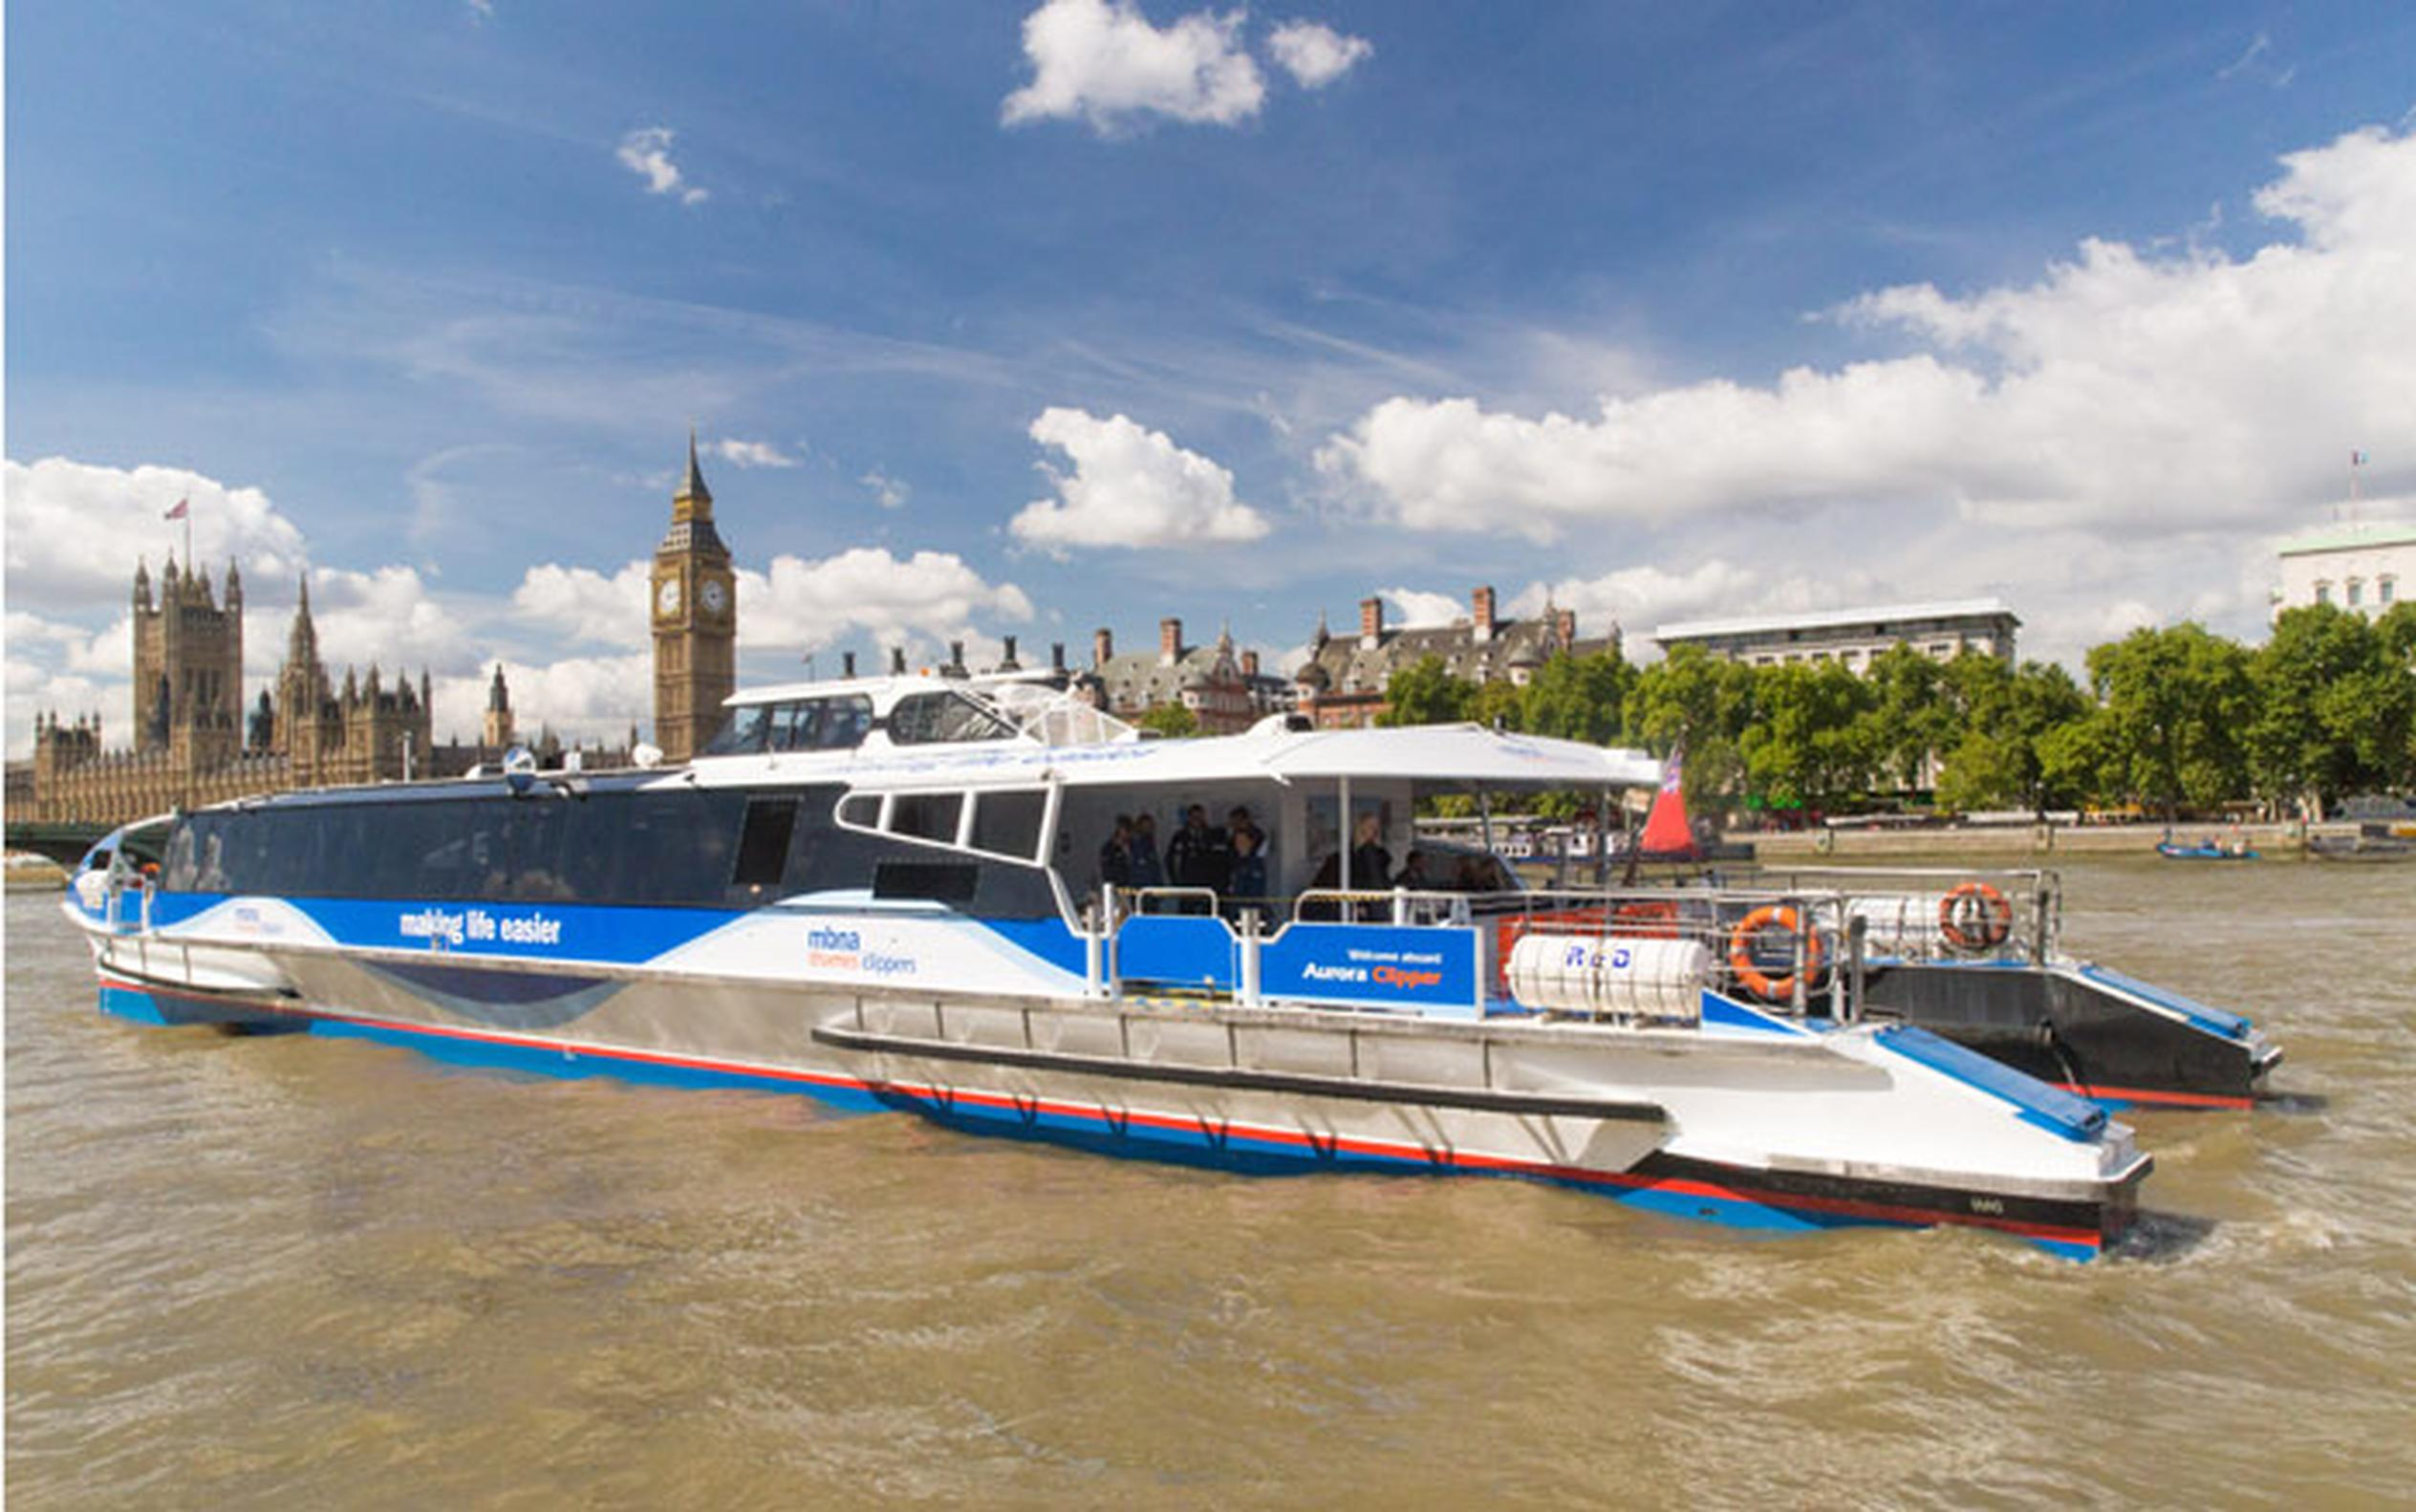 10 million people now use the TfL River Bus service every year